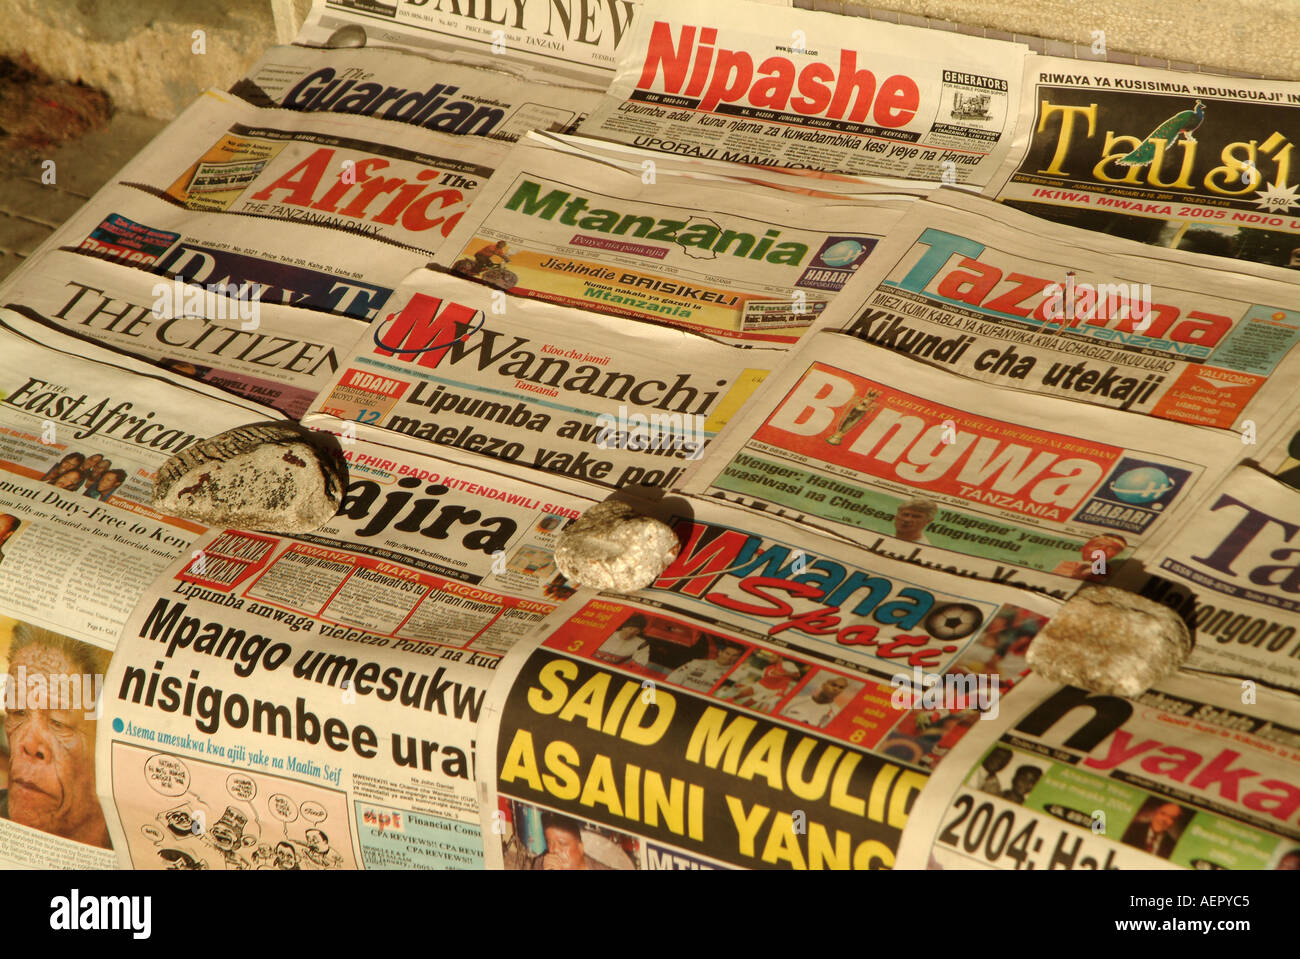 English and Swahili language newspapers for sale on the road side in Dar Es Salaam. Tanzania, Africa - Stock Image